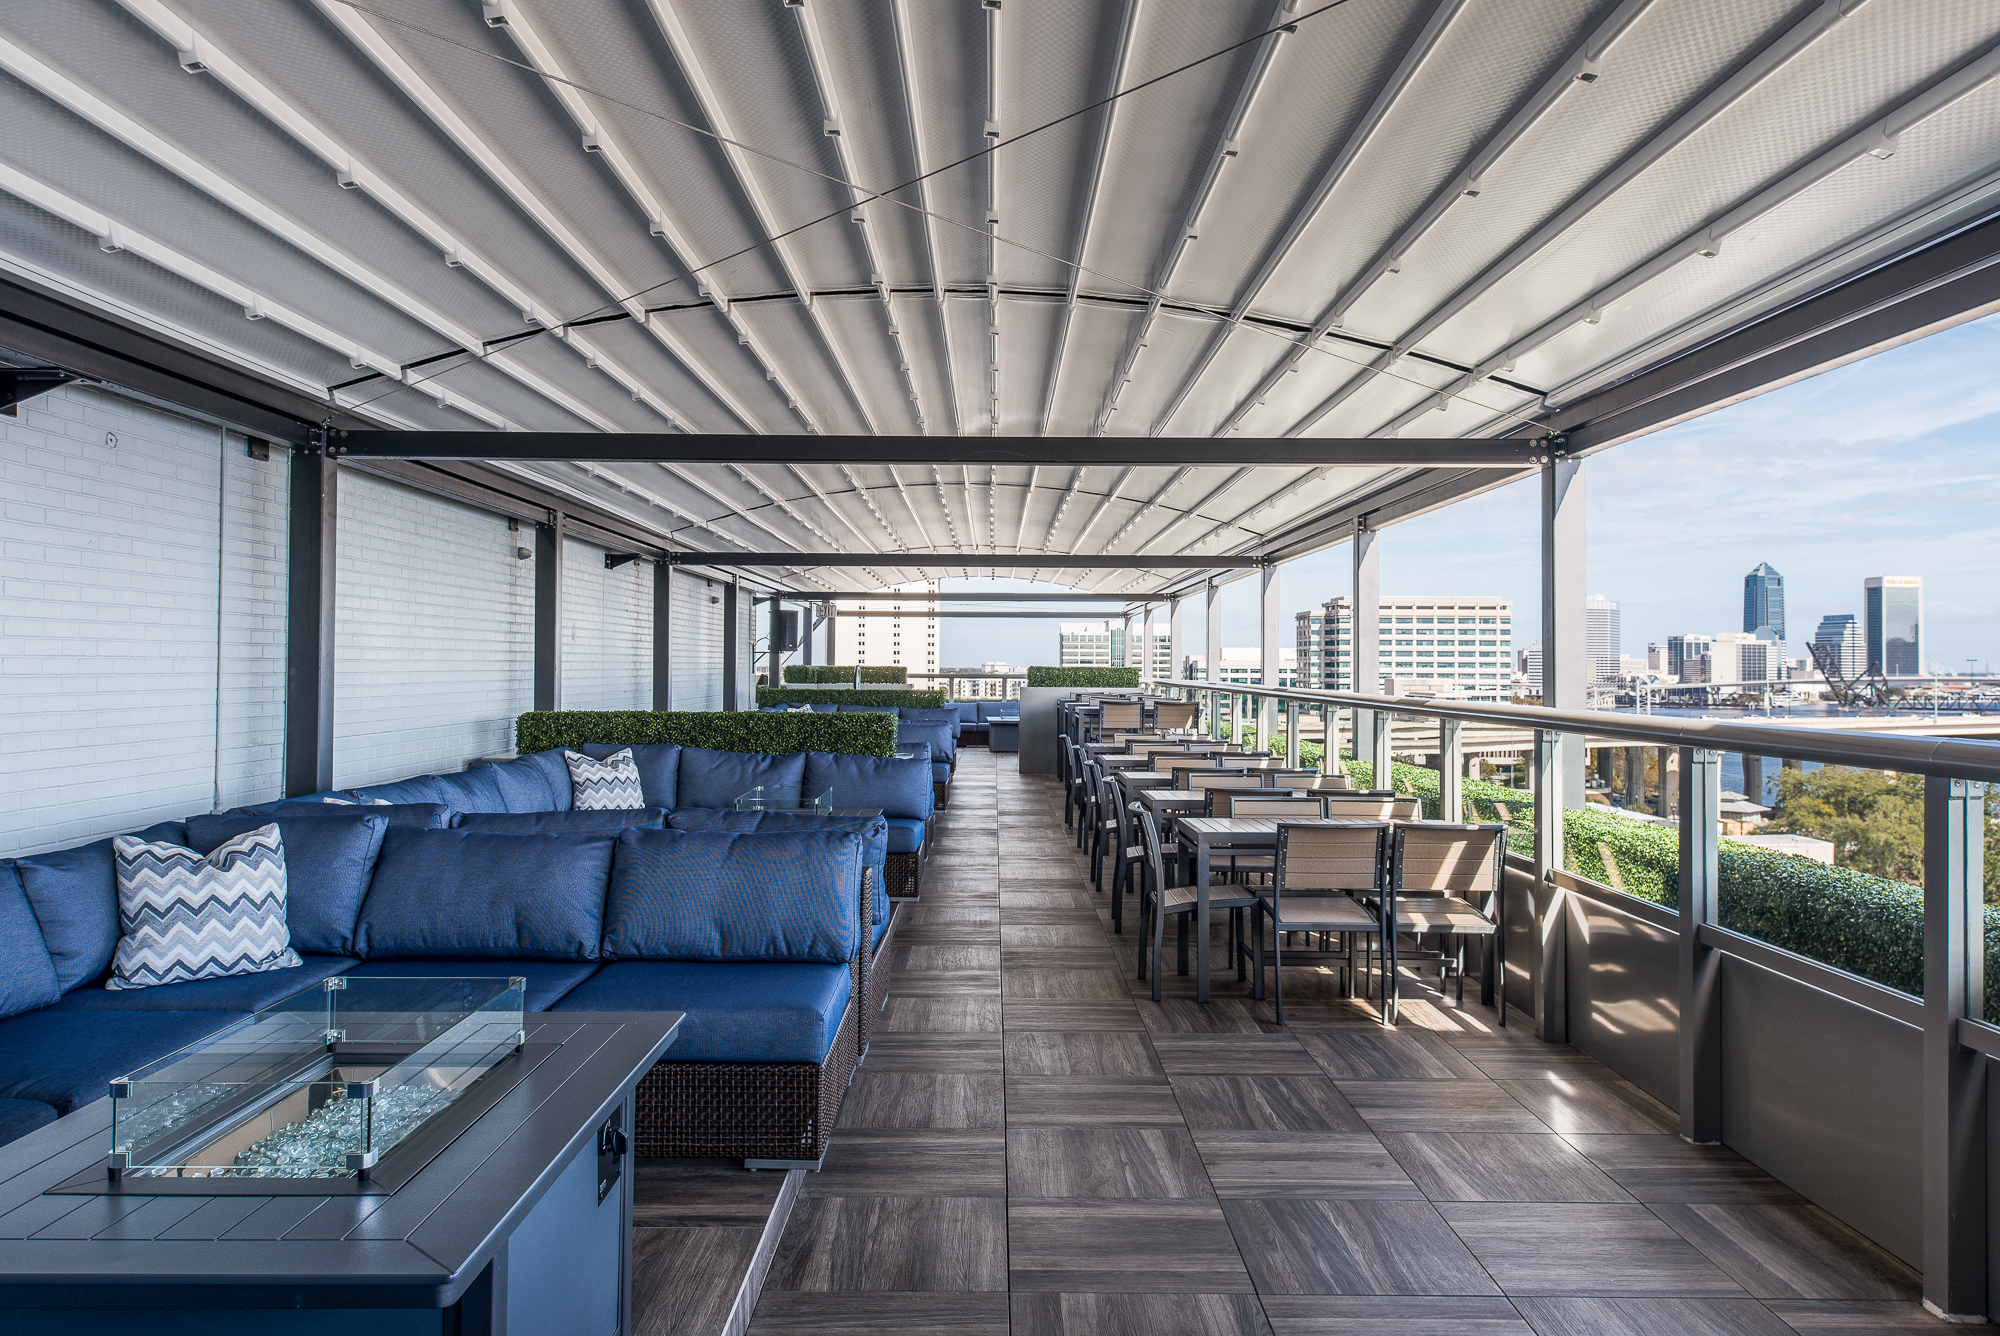 Micamy Design Studio_Interior Design_River and Post_Restaurant_Rooftop_Bar_Industrial_Rustic_Coastal_Riverside_Reclaimed Wood_Blog Style_Styling Accessories_Outdoor Patio_Cocktails (8).jpg